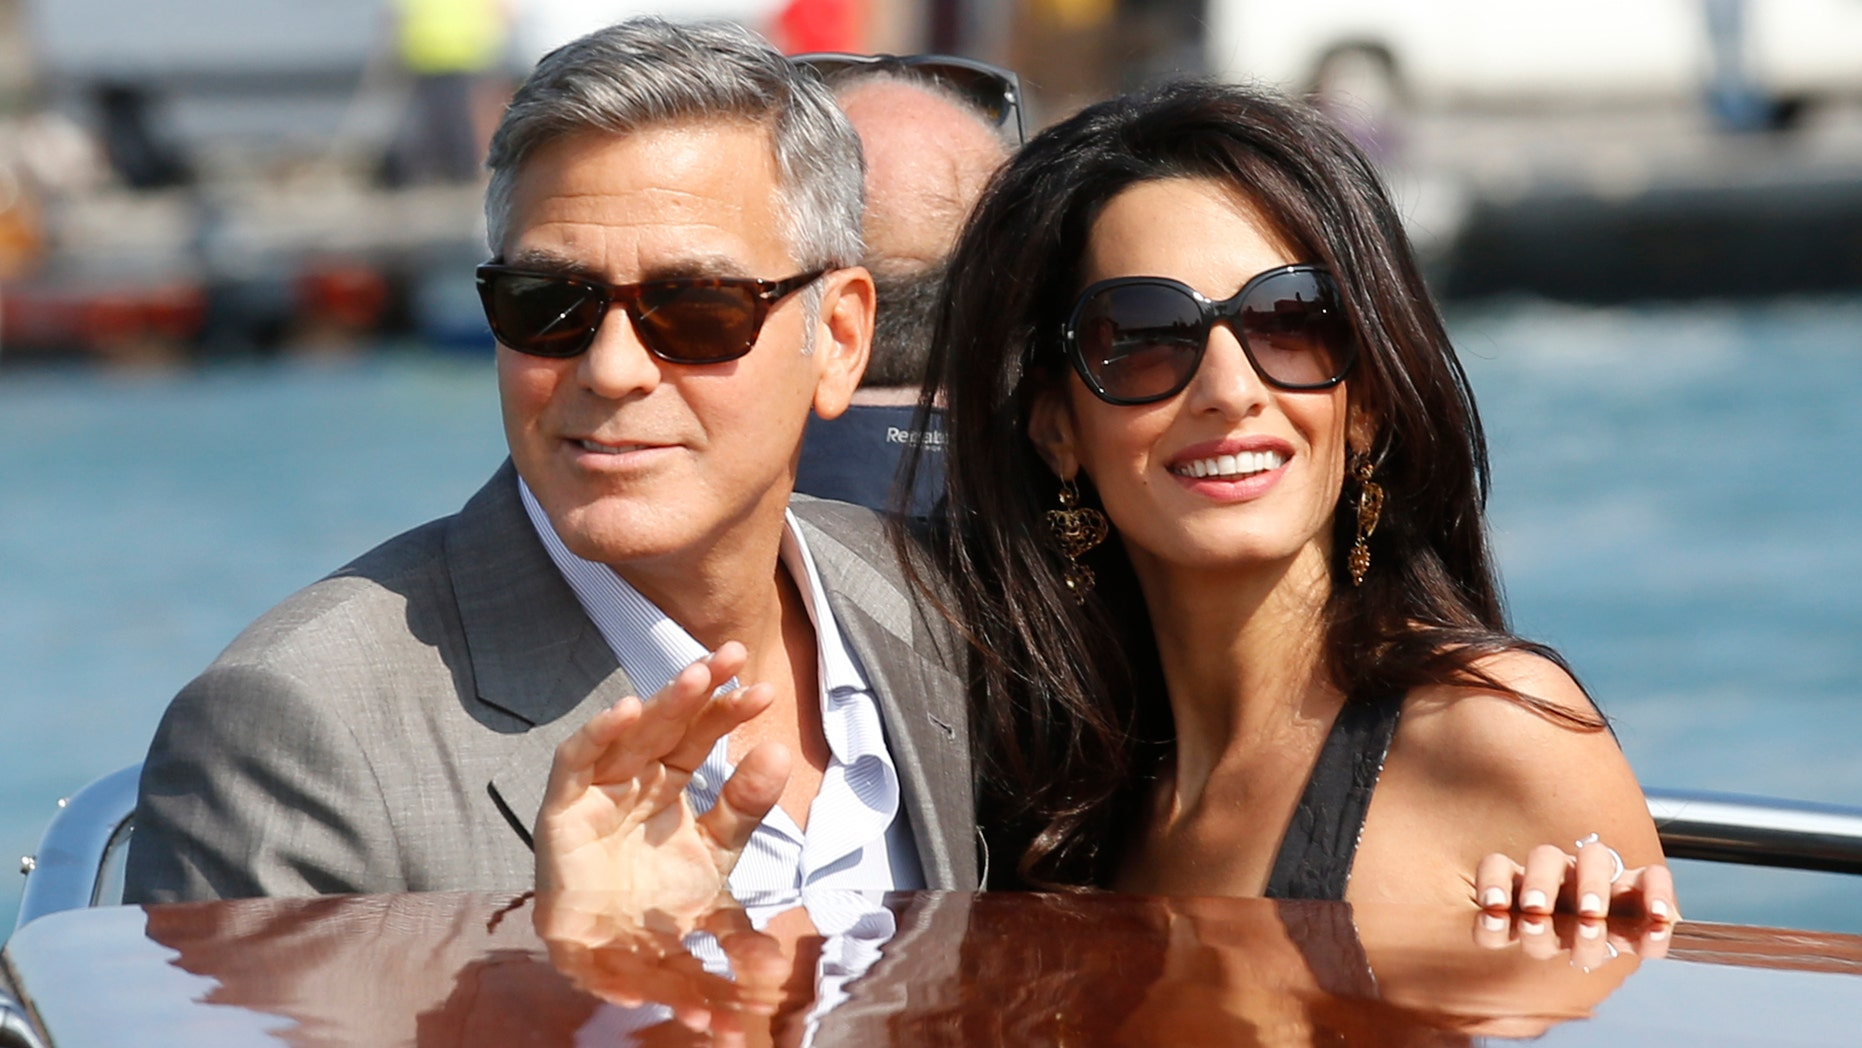 George Clooney, left, and Amal Alamuddin arrive in Venice, Italy, Friday, Sept. 26, 2014.